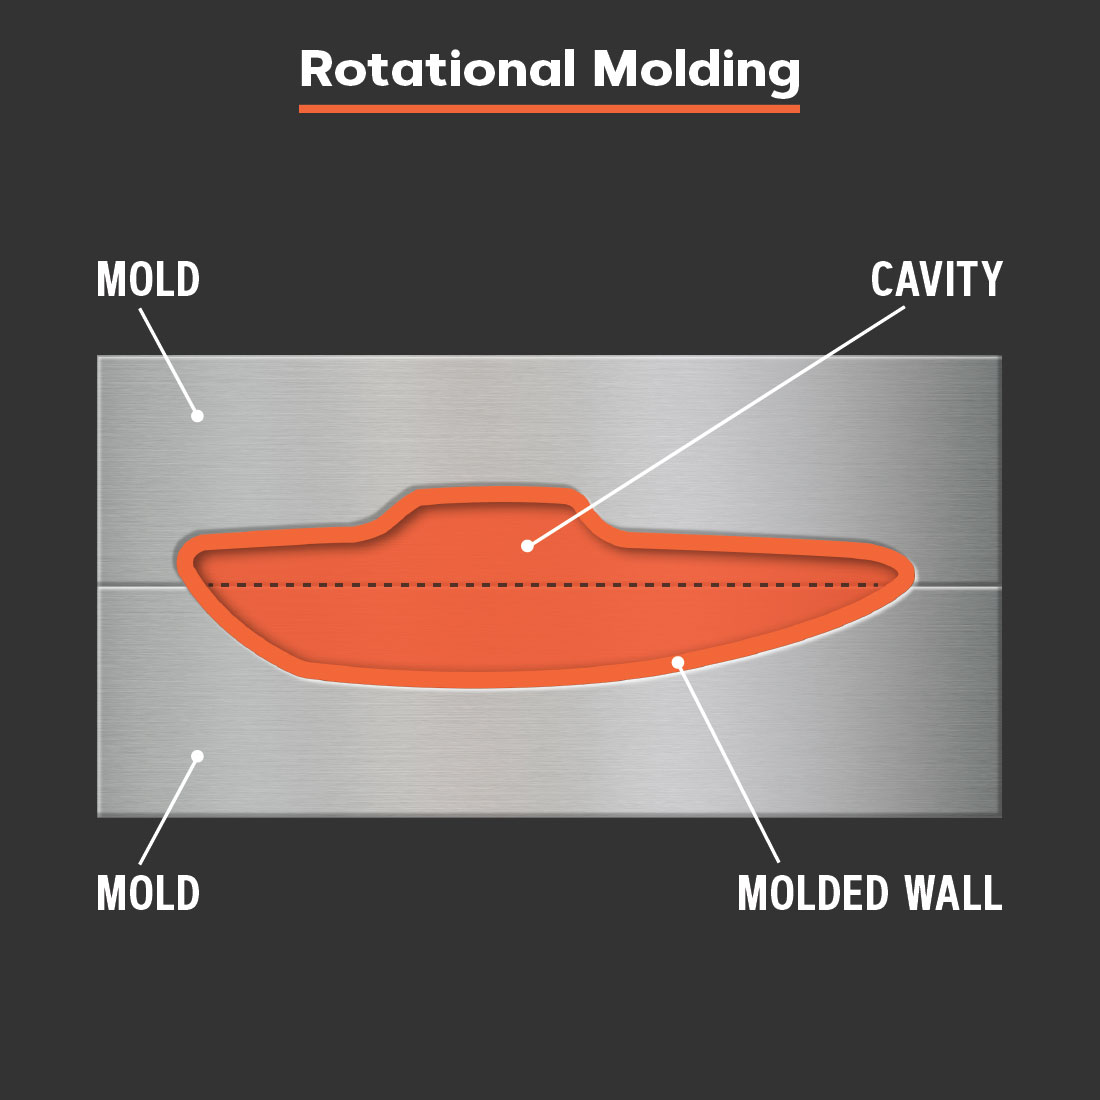 Diagram of a rotational molding tool.